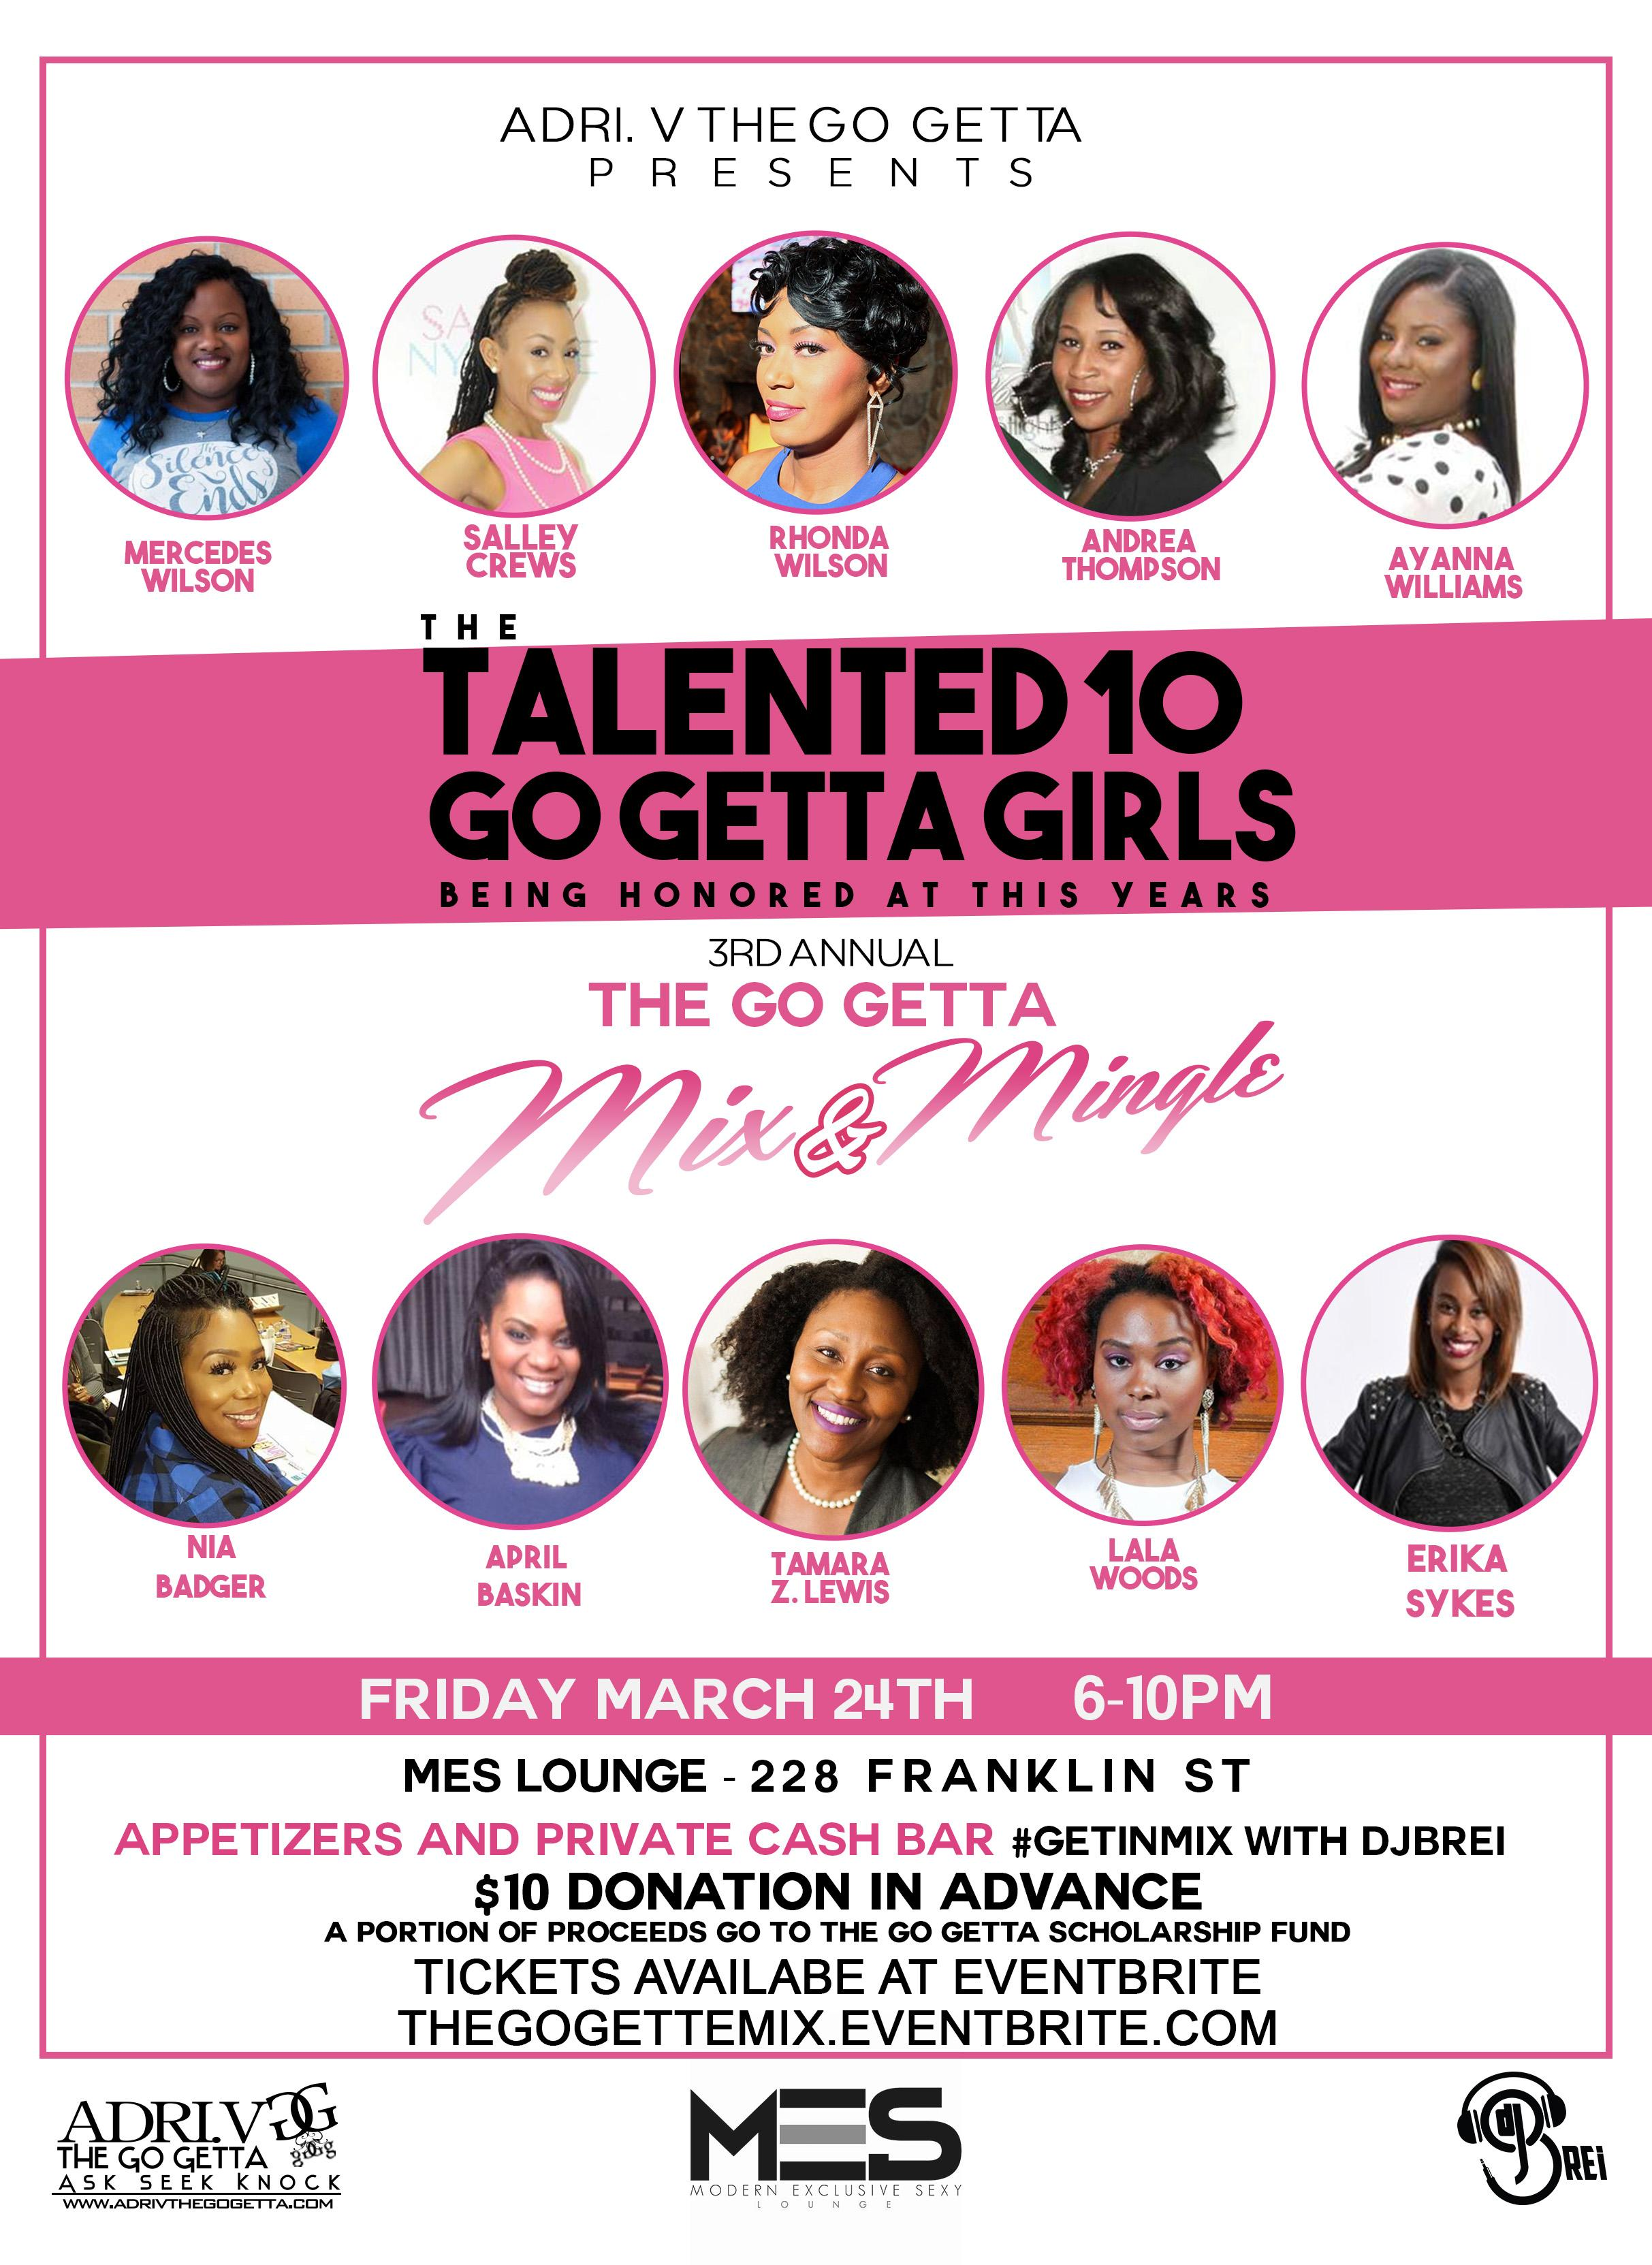 The Go Getta Mix + Mingle 3rd Annual Event